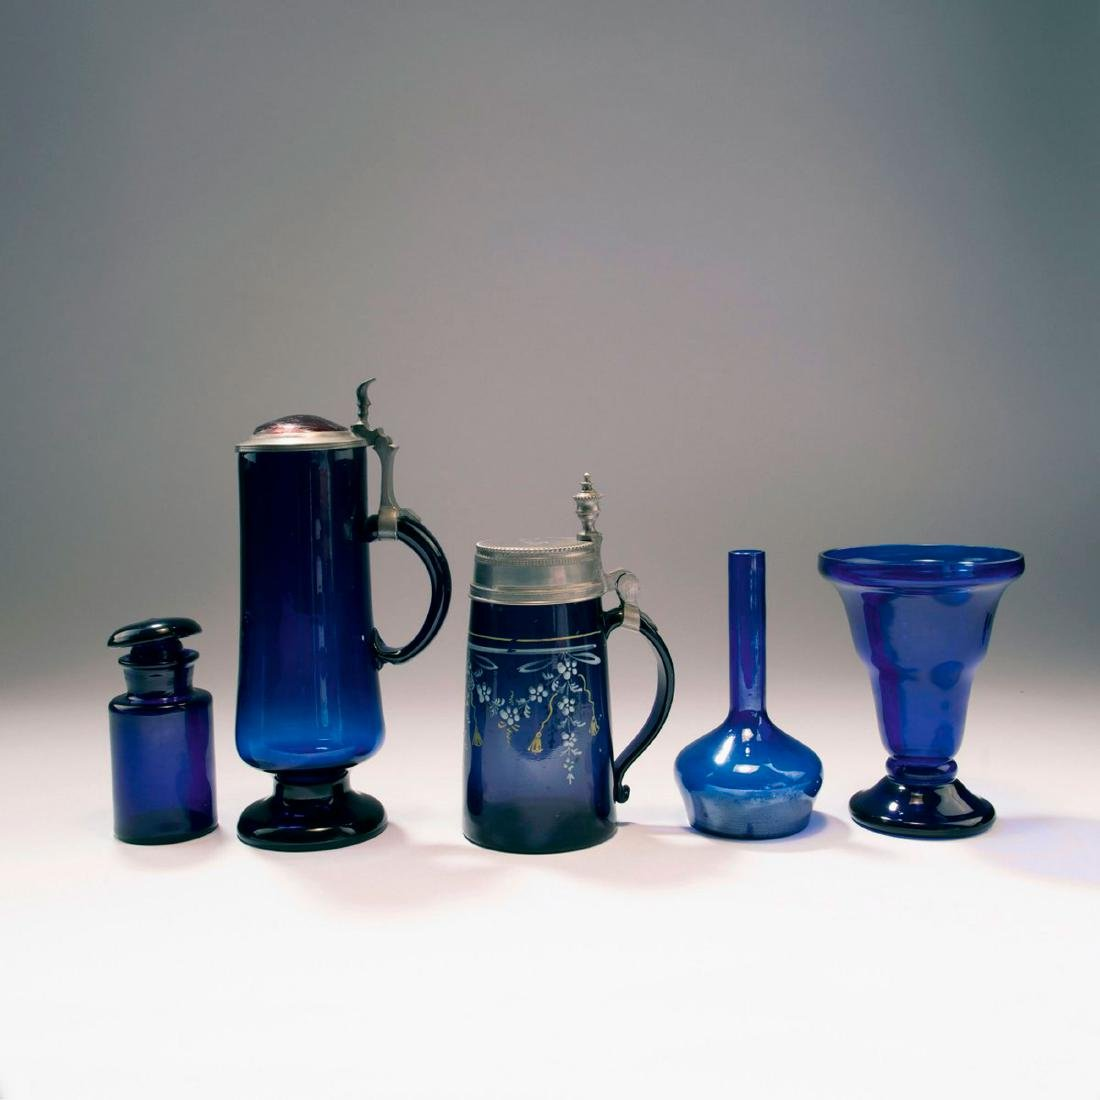 Mixed lot of glassware, 5 pieces, c. 1900 - 1920s